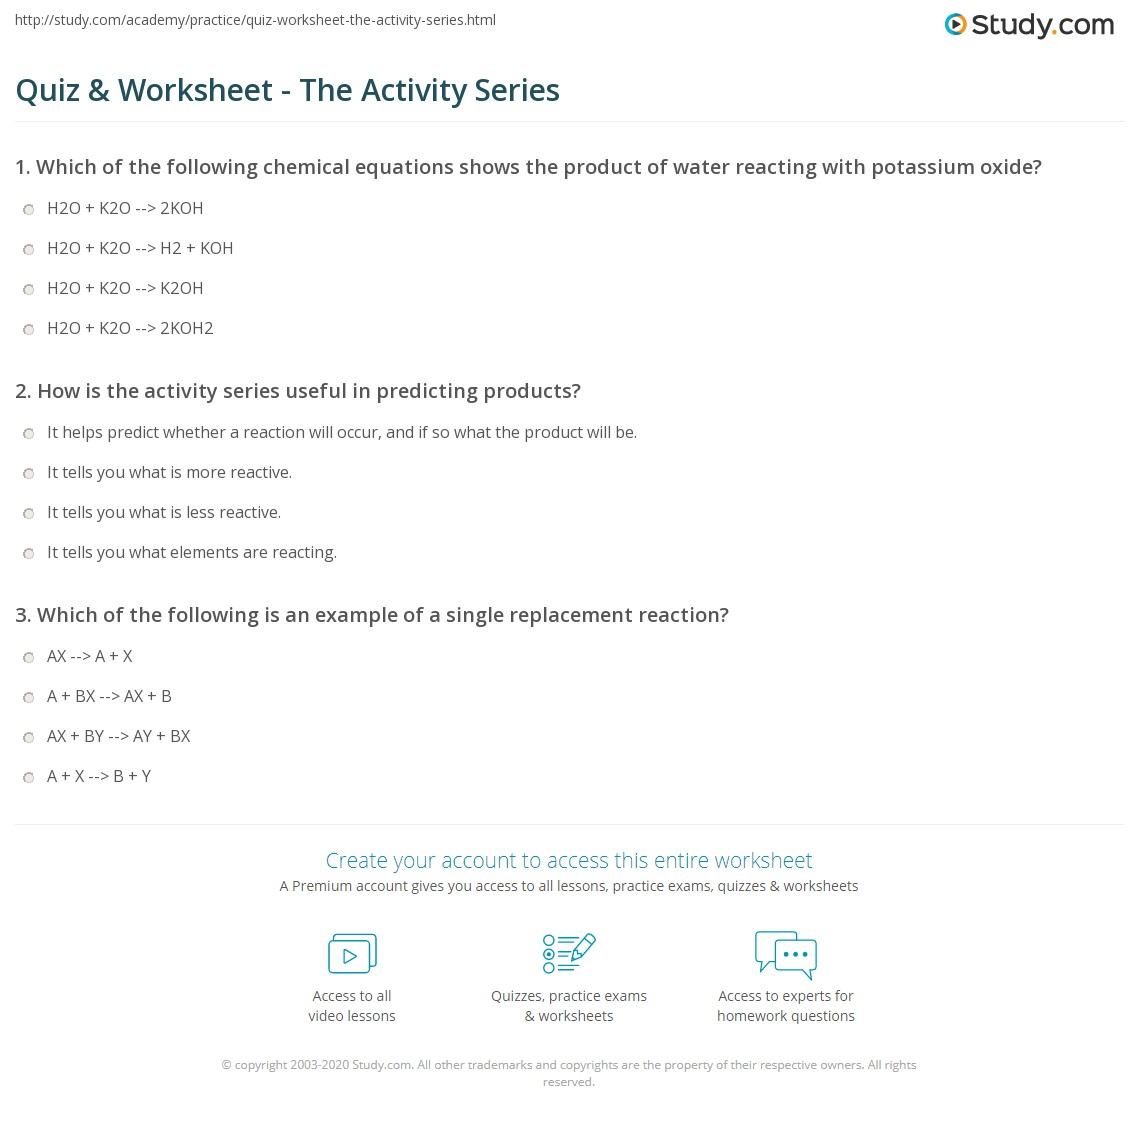 Aldiablosus  Picturesque Quiz Amp Worksheet  The Activity Series  Studycom With Magnificent Print The Activity Series Predicting Products Of Single Displacement Reactions Worksheet With Alluring Rd Grade Time Worksheets Also Touch Math Addition Worksheets In Addition Mla Citation Worksheet And Math Is Fun Worksheets As Well As An Inconvenient Truth Worksheet Answers Additionally Integer Worksheets Grade  From Studycom With Aldiablosus  Magnificent Quiz Amp Worksheet  The Activity Series  Studycom With Alluring Print The Activity Series Predicting Products Of Single Displacement Reactions Worksheet And Picturesque Rd Grade Time Worksheets Also Touch Math Addition Worksheets In Addition Mla Citation Worksheet From Studycom